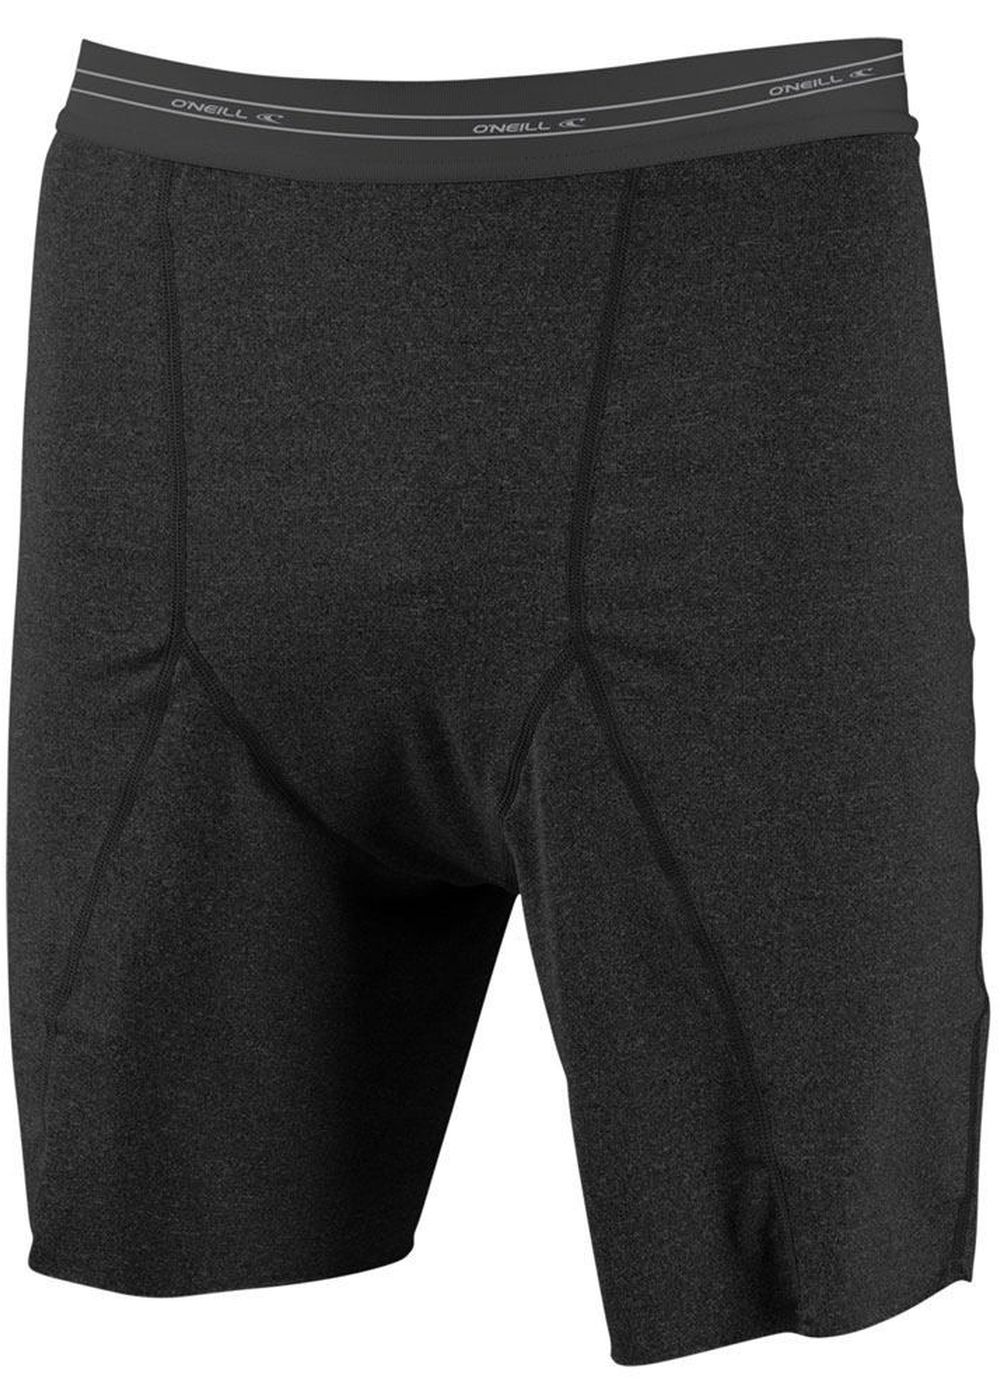 ONeill 24-7 Hybrid Lyrca Under Short Boxers